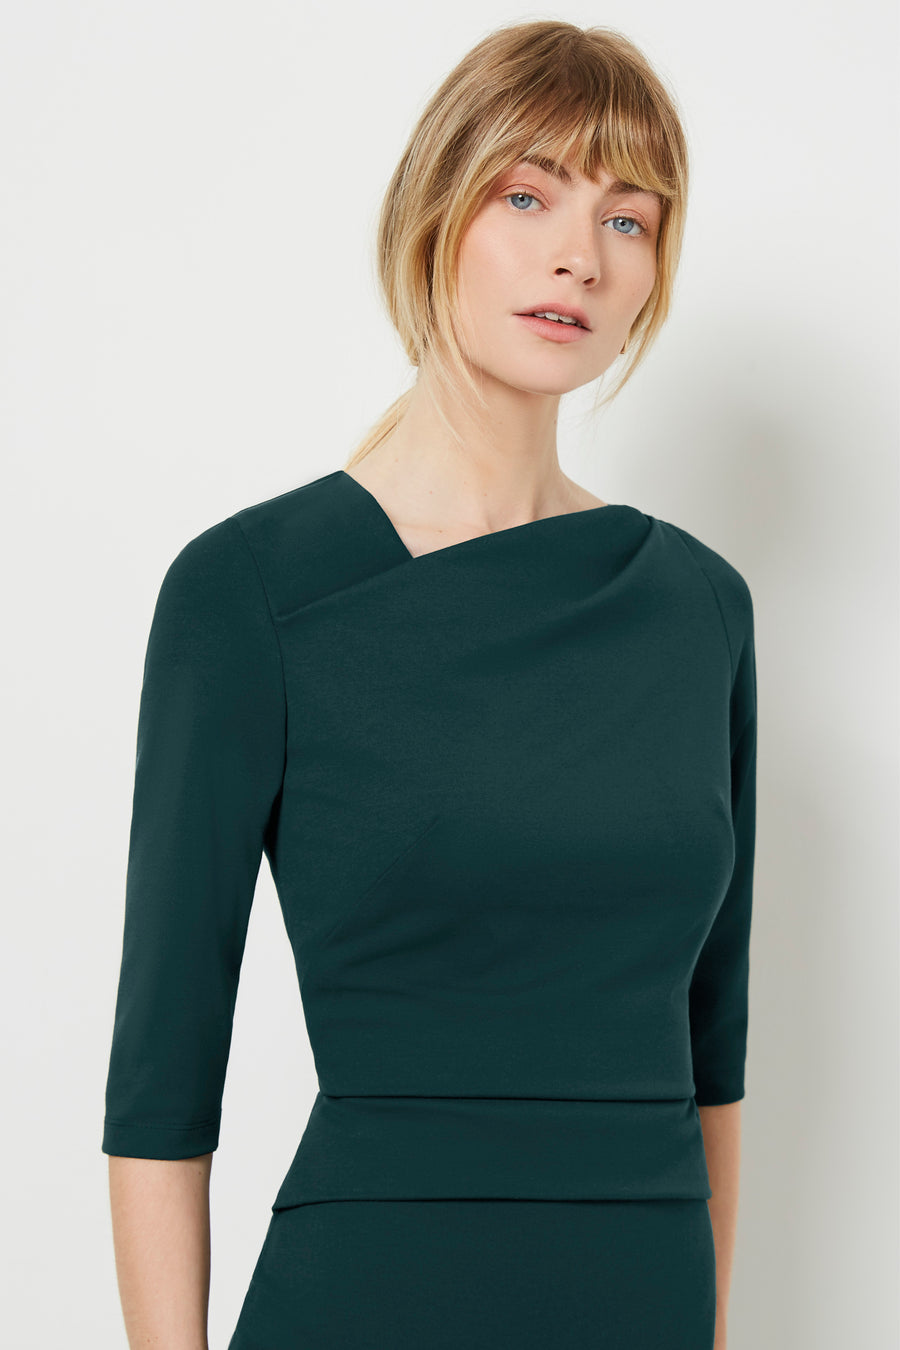 Cavendish Green Ponte Dress